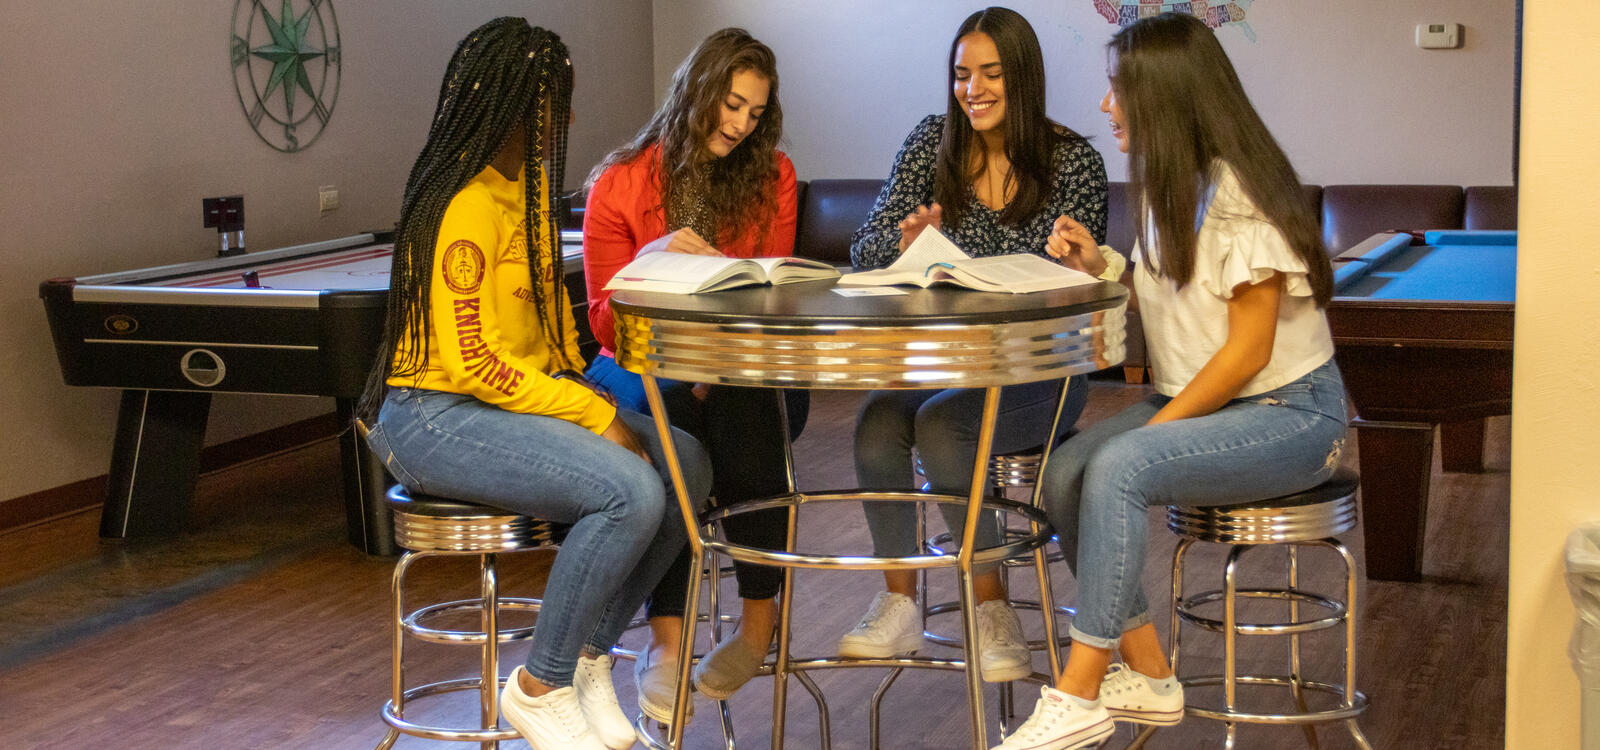 Four students sit at a small round table and look through their textbooks together.